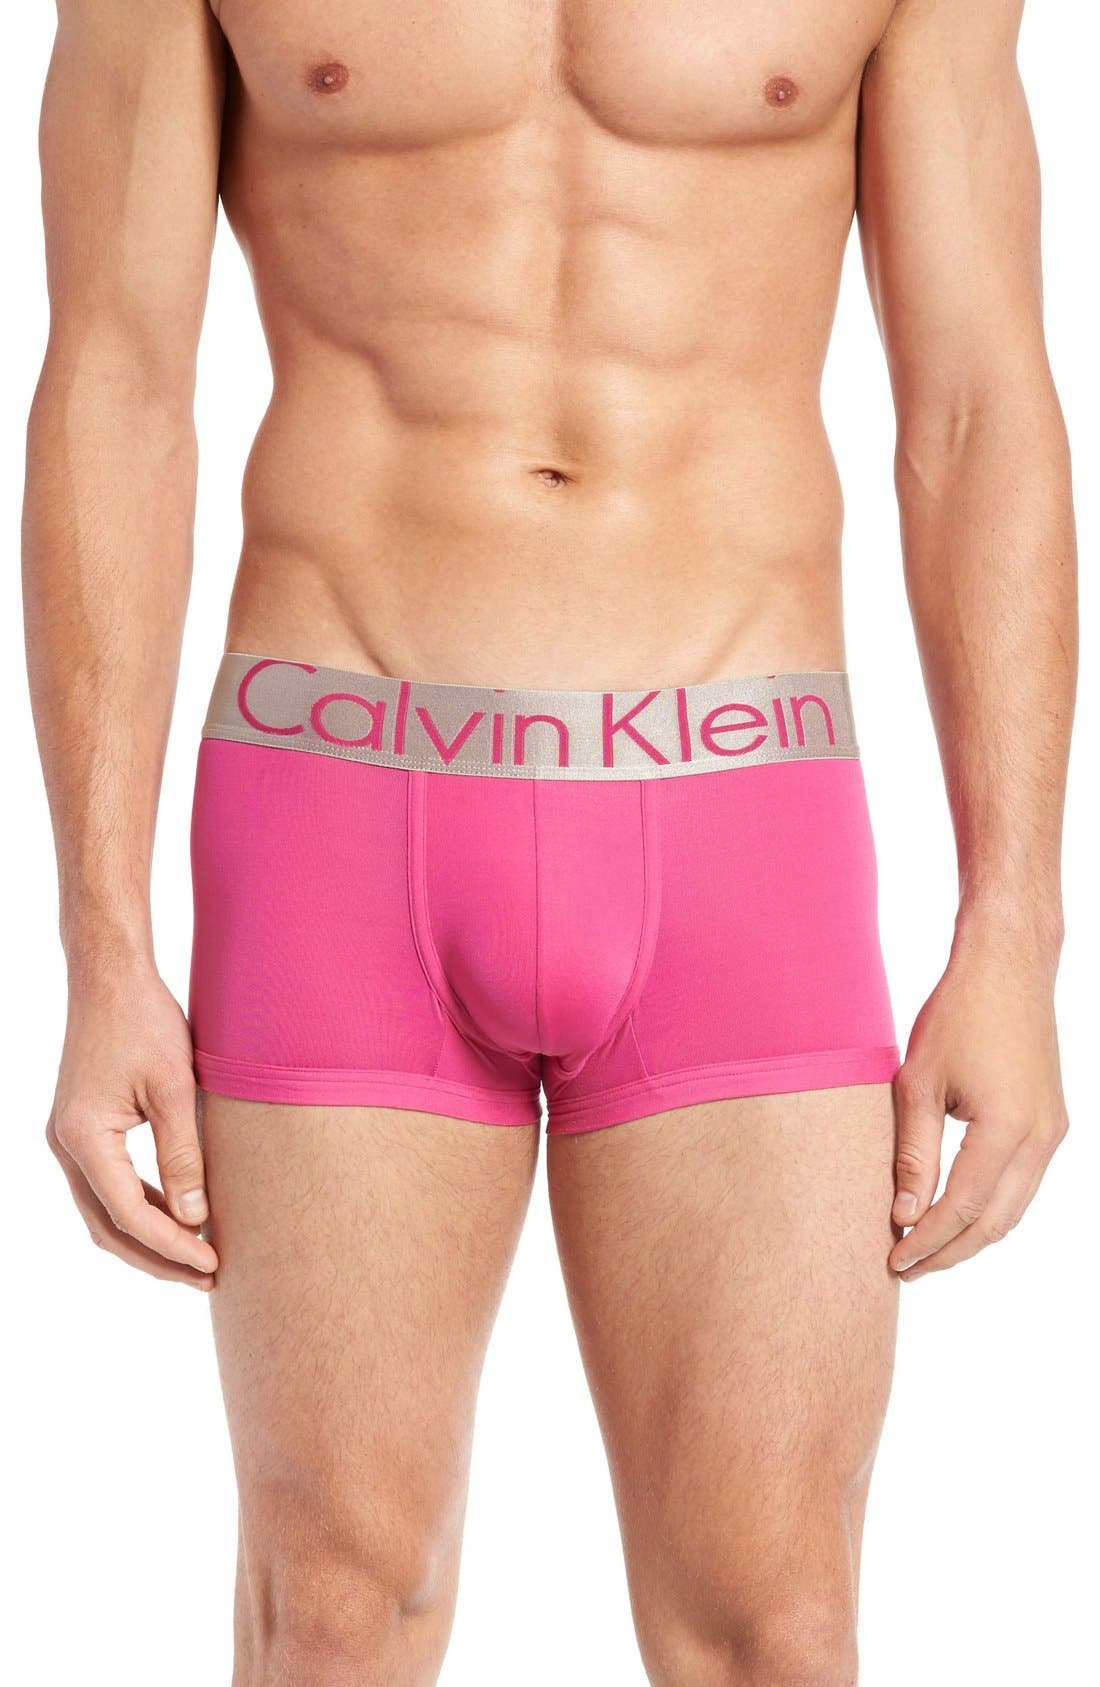 CALVIN KLEIN Steel U2716 Microfiber Low Rise Trunks